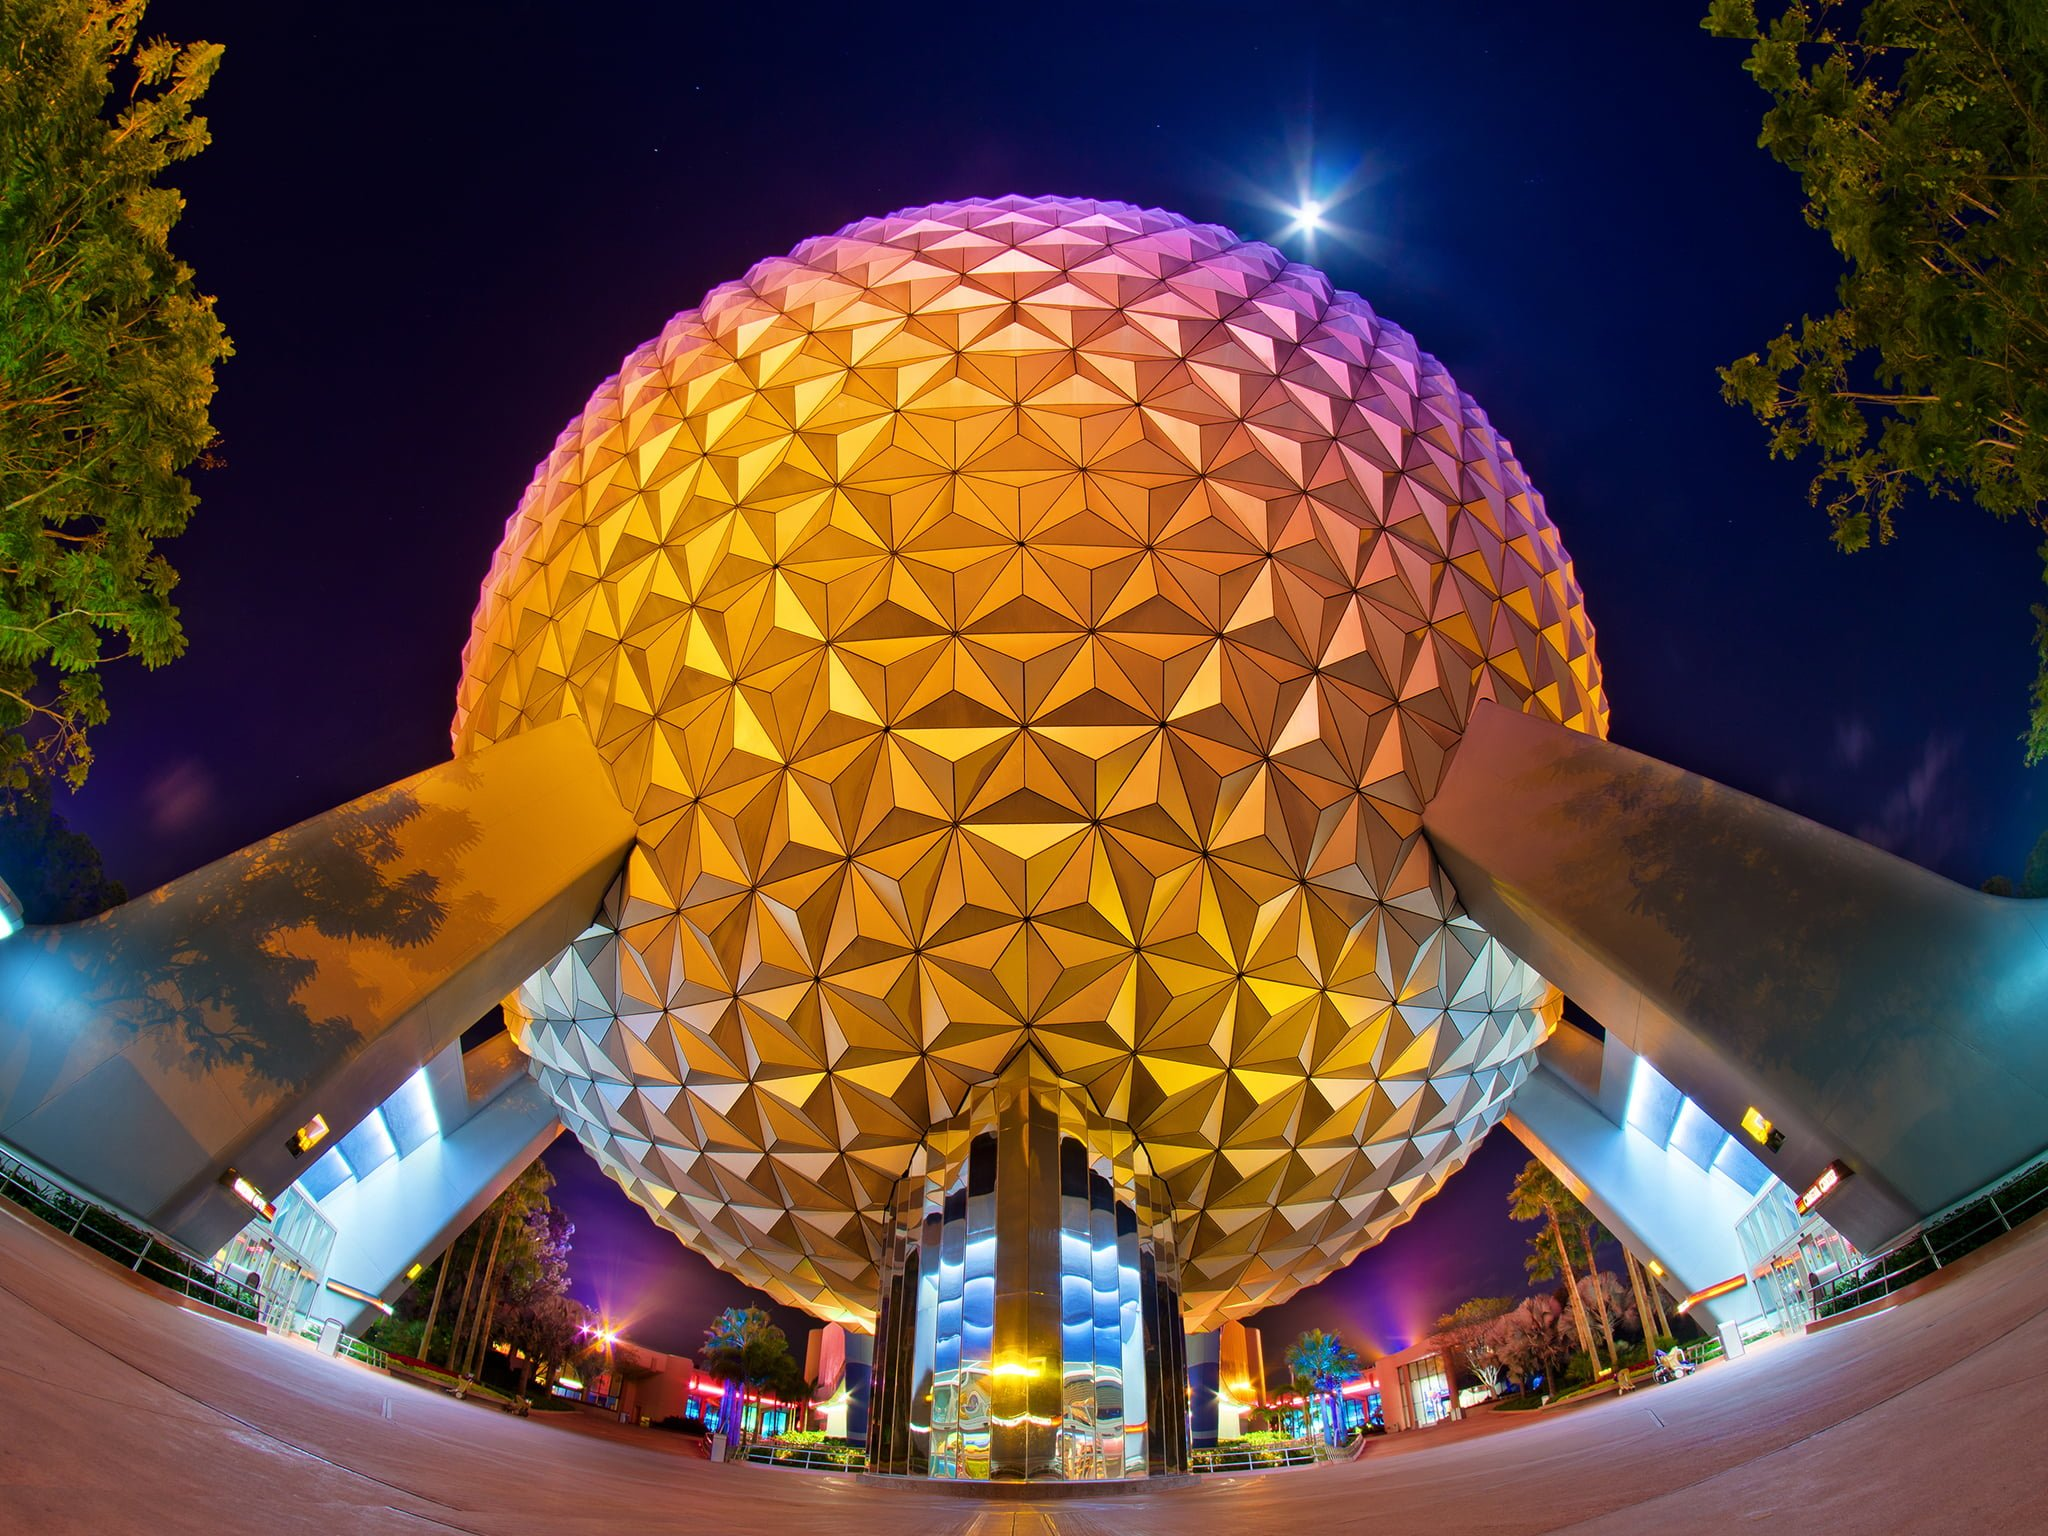 The latest round of Spaceship Earth rumors first came onto our radar last fall when WDWNT reported that Spaceship Earth would be overhauled, with all scenes ...